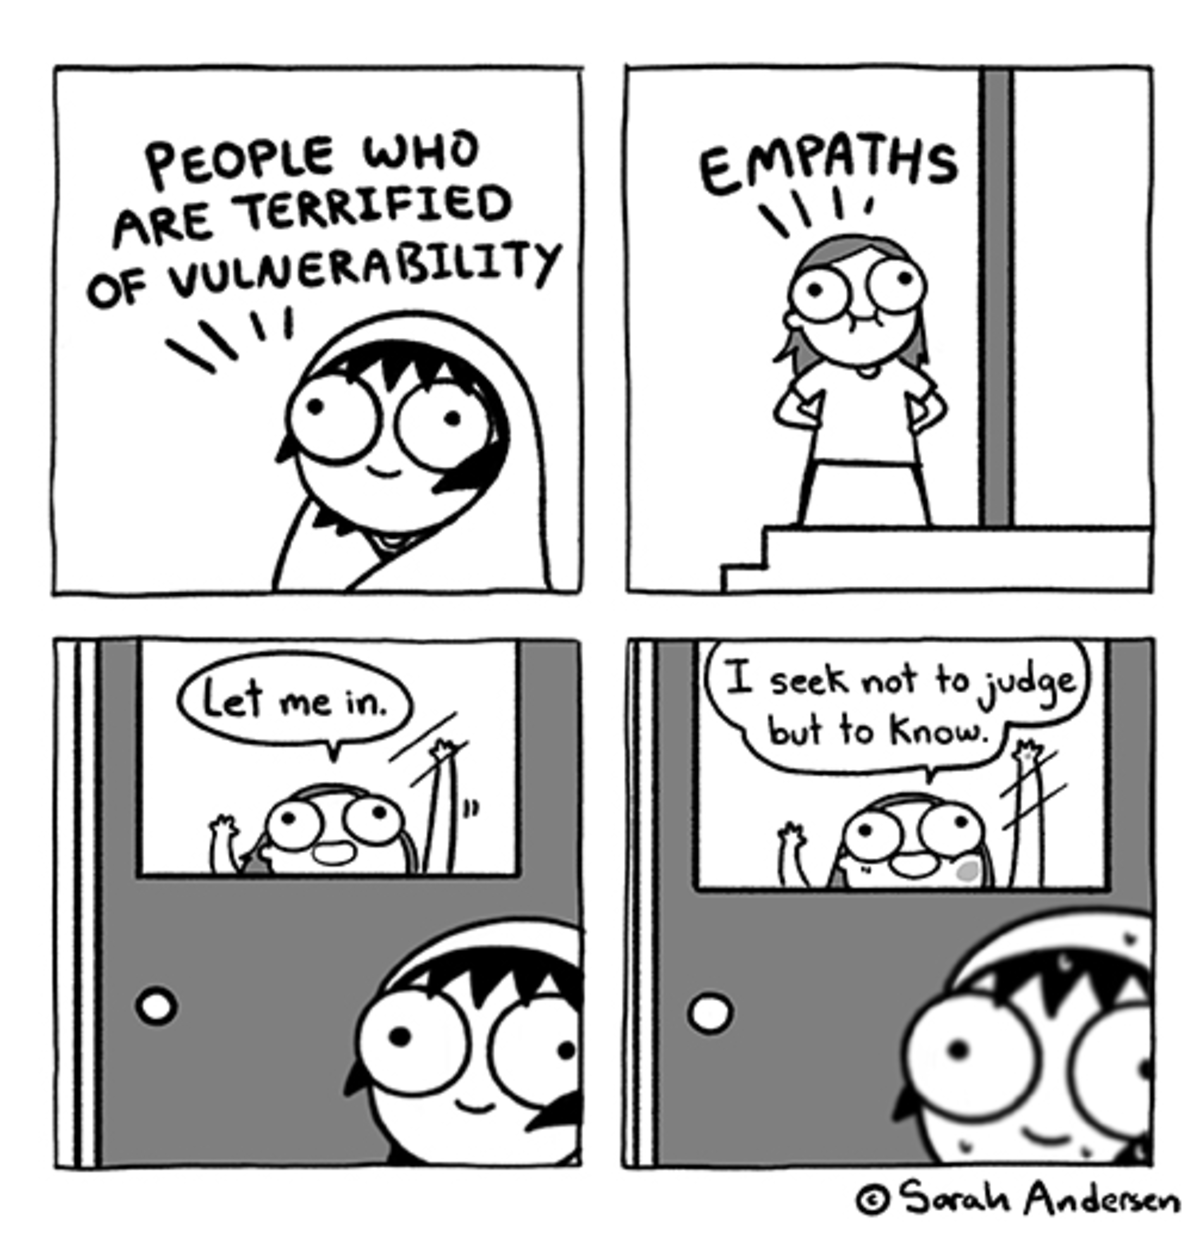 I EAK. .. I feel super guilty for being both of these people. I want people to be open to me, and I often end up knowing people pretty deeply but I have the hardest time